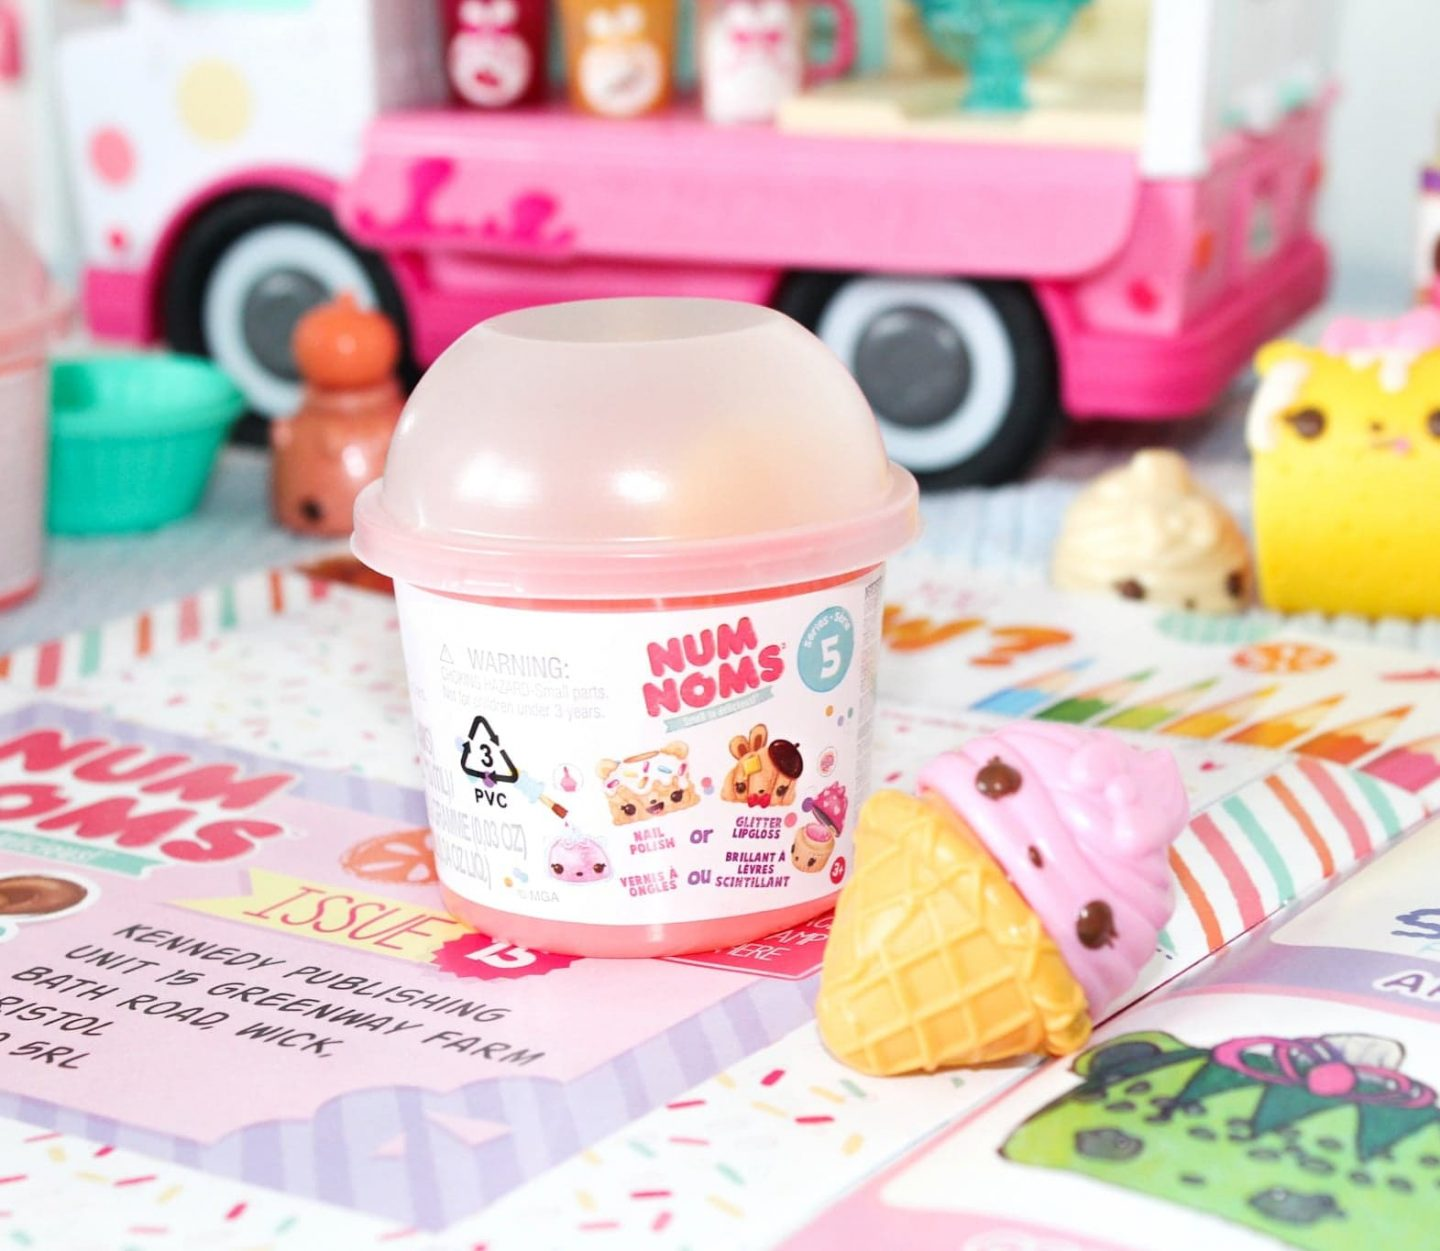 Welcome to the Cute & Squishy World of Num Noms